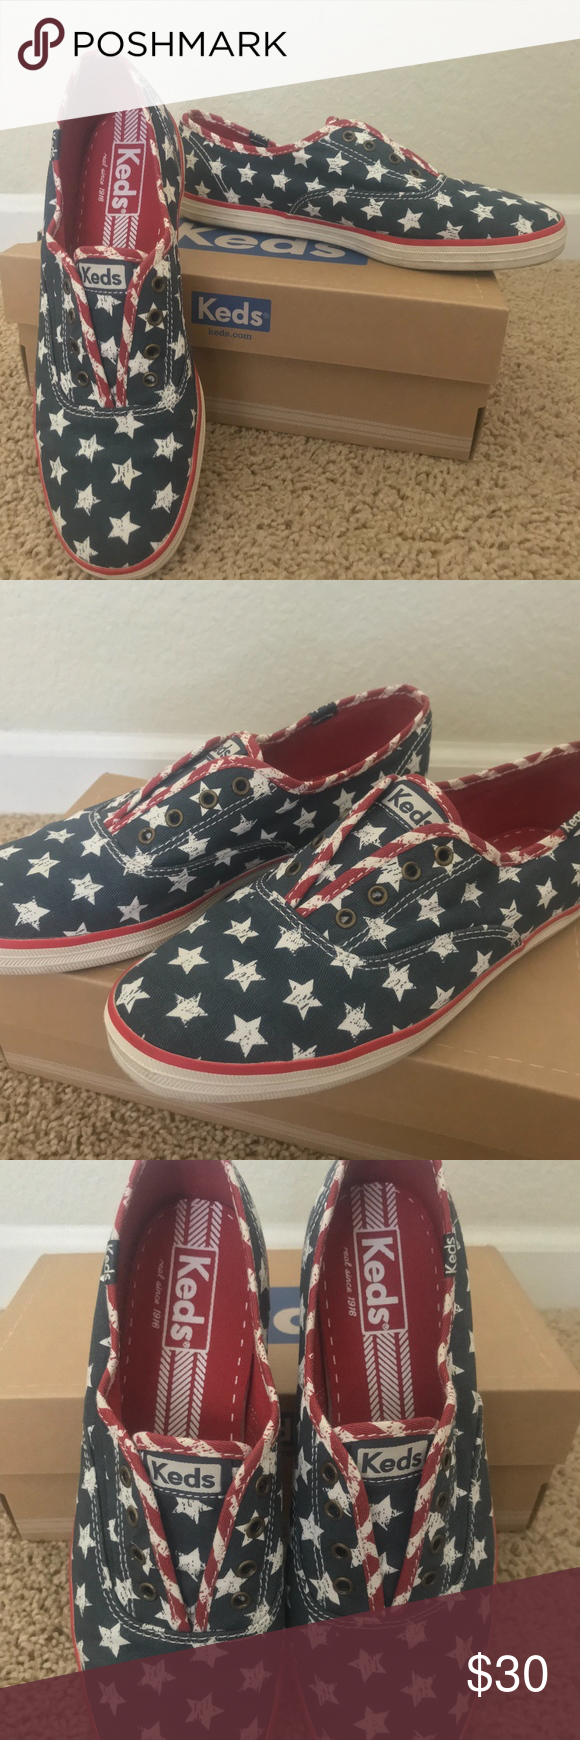 Keds, Womens sneakers, Tennis shoes